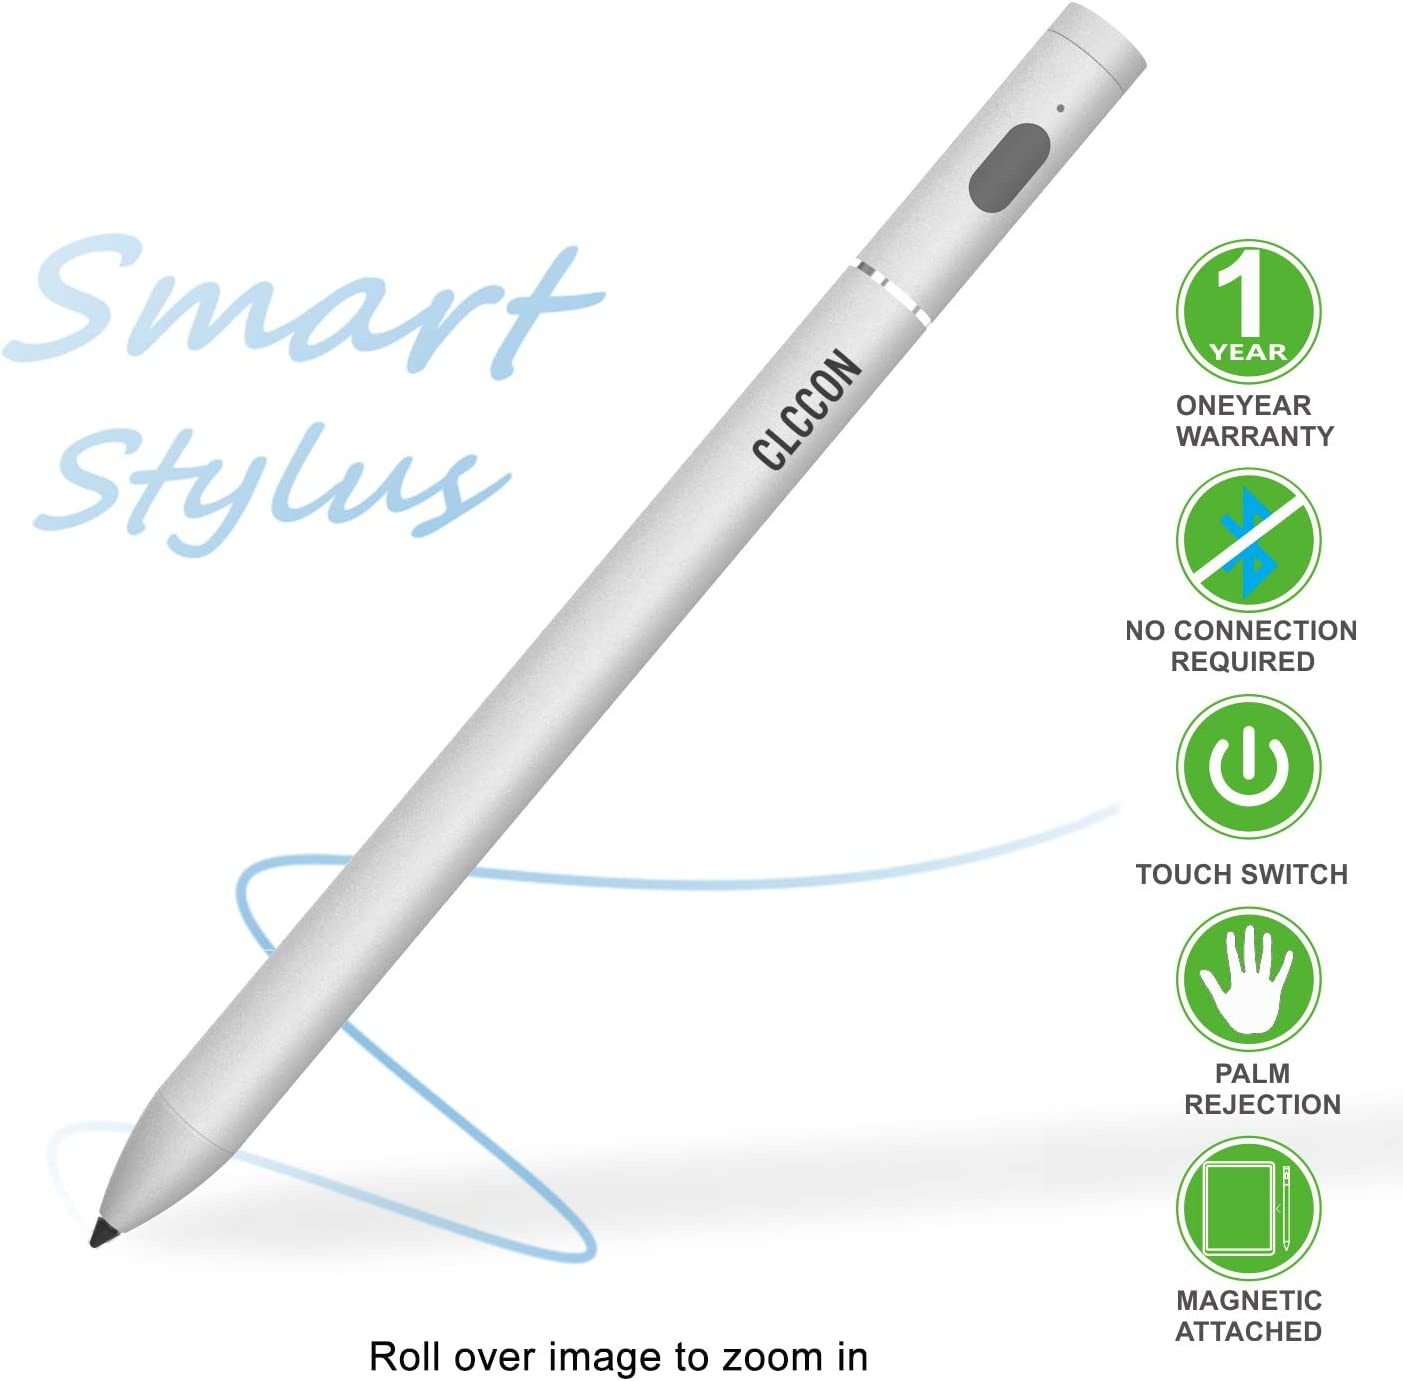 CLCCON Stylus Pen for Apple iPad Air 10.5,iPad Mini 7.9,iPad 7.9,iPad 10.2,iPad Pro 11/12.9 and Launched in 2018&2019